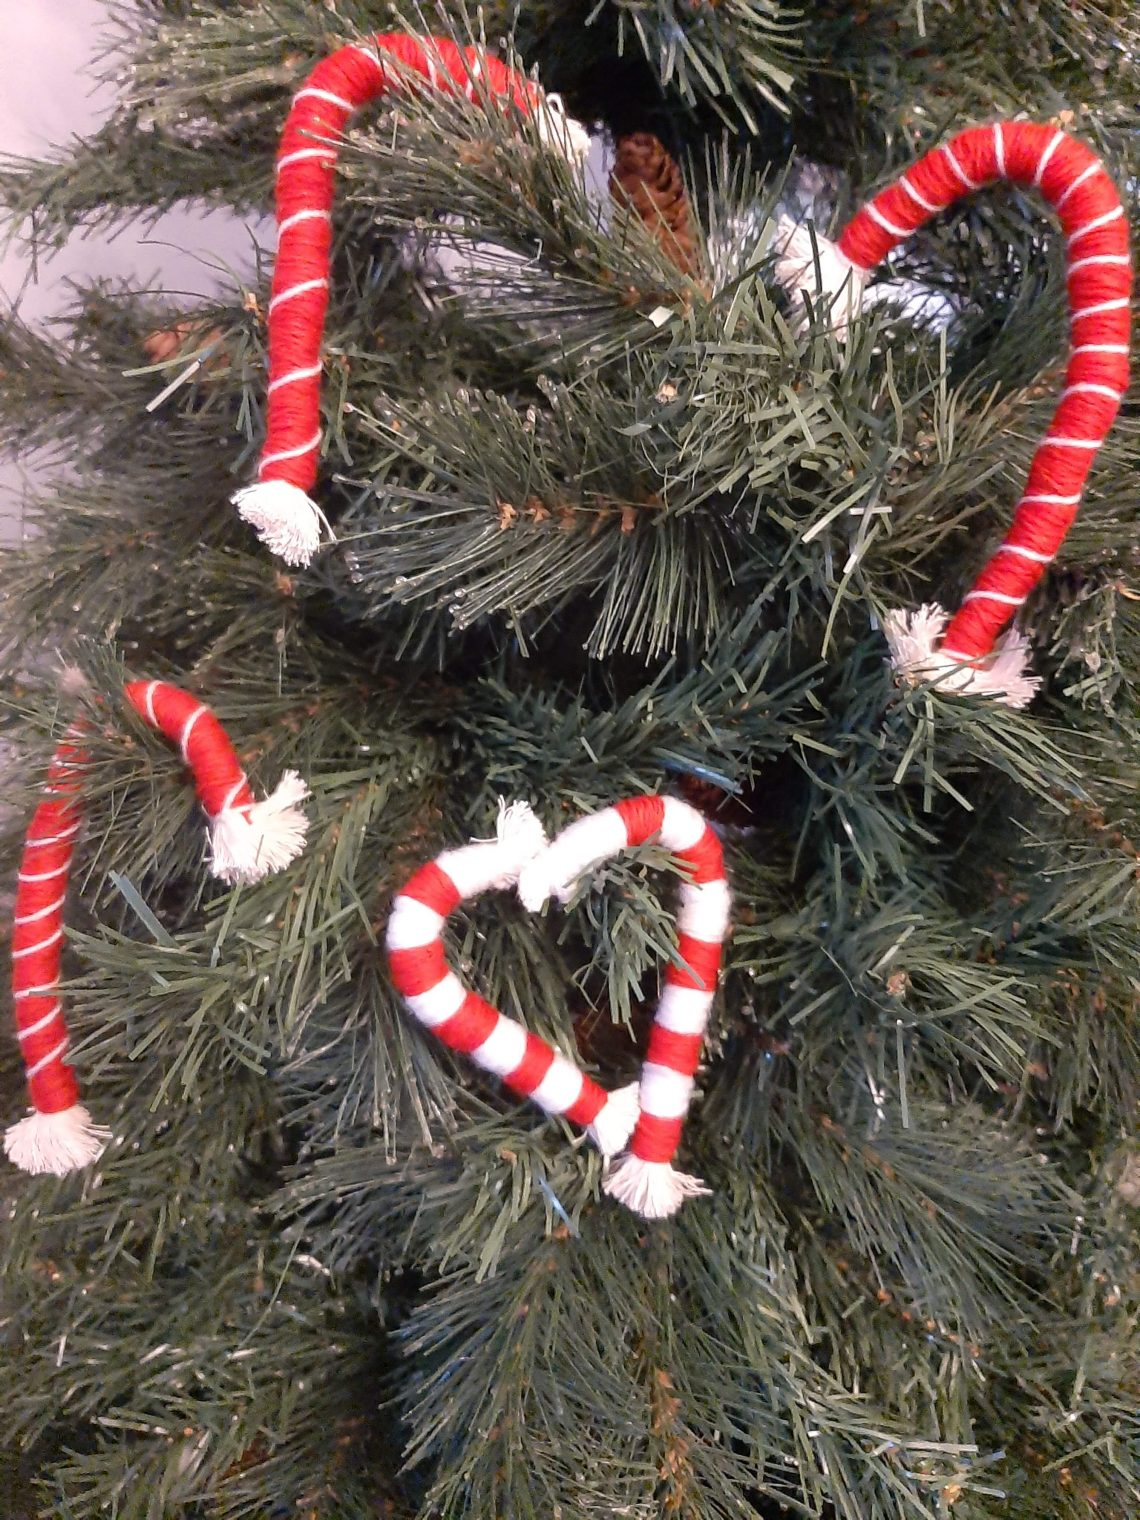 red and white rope candy canes